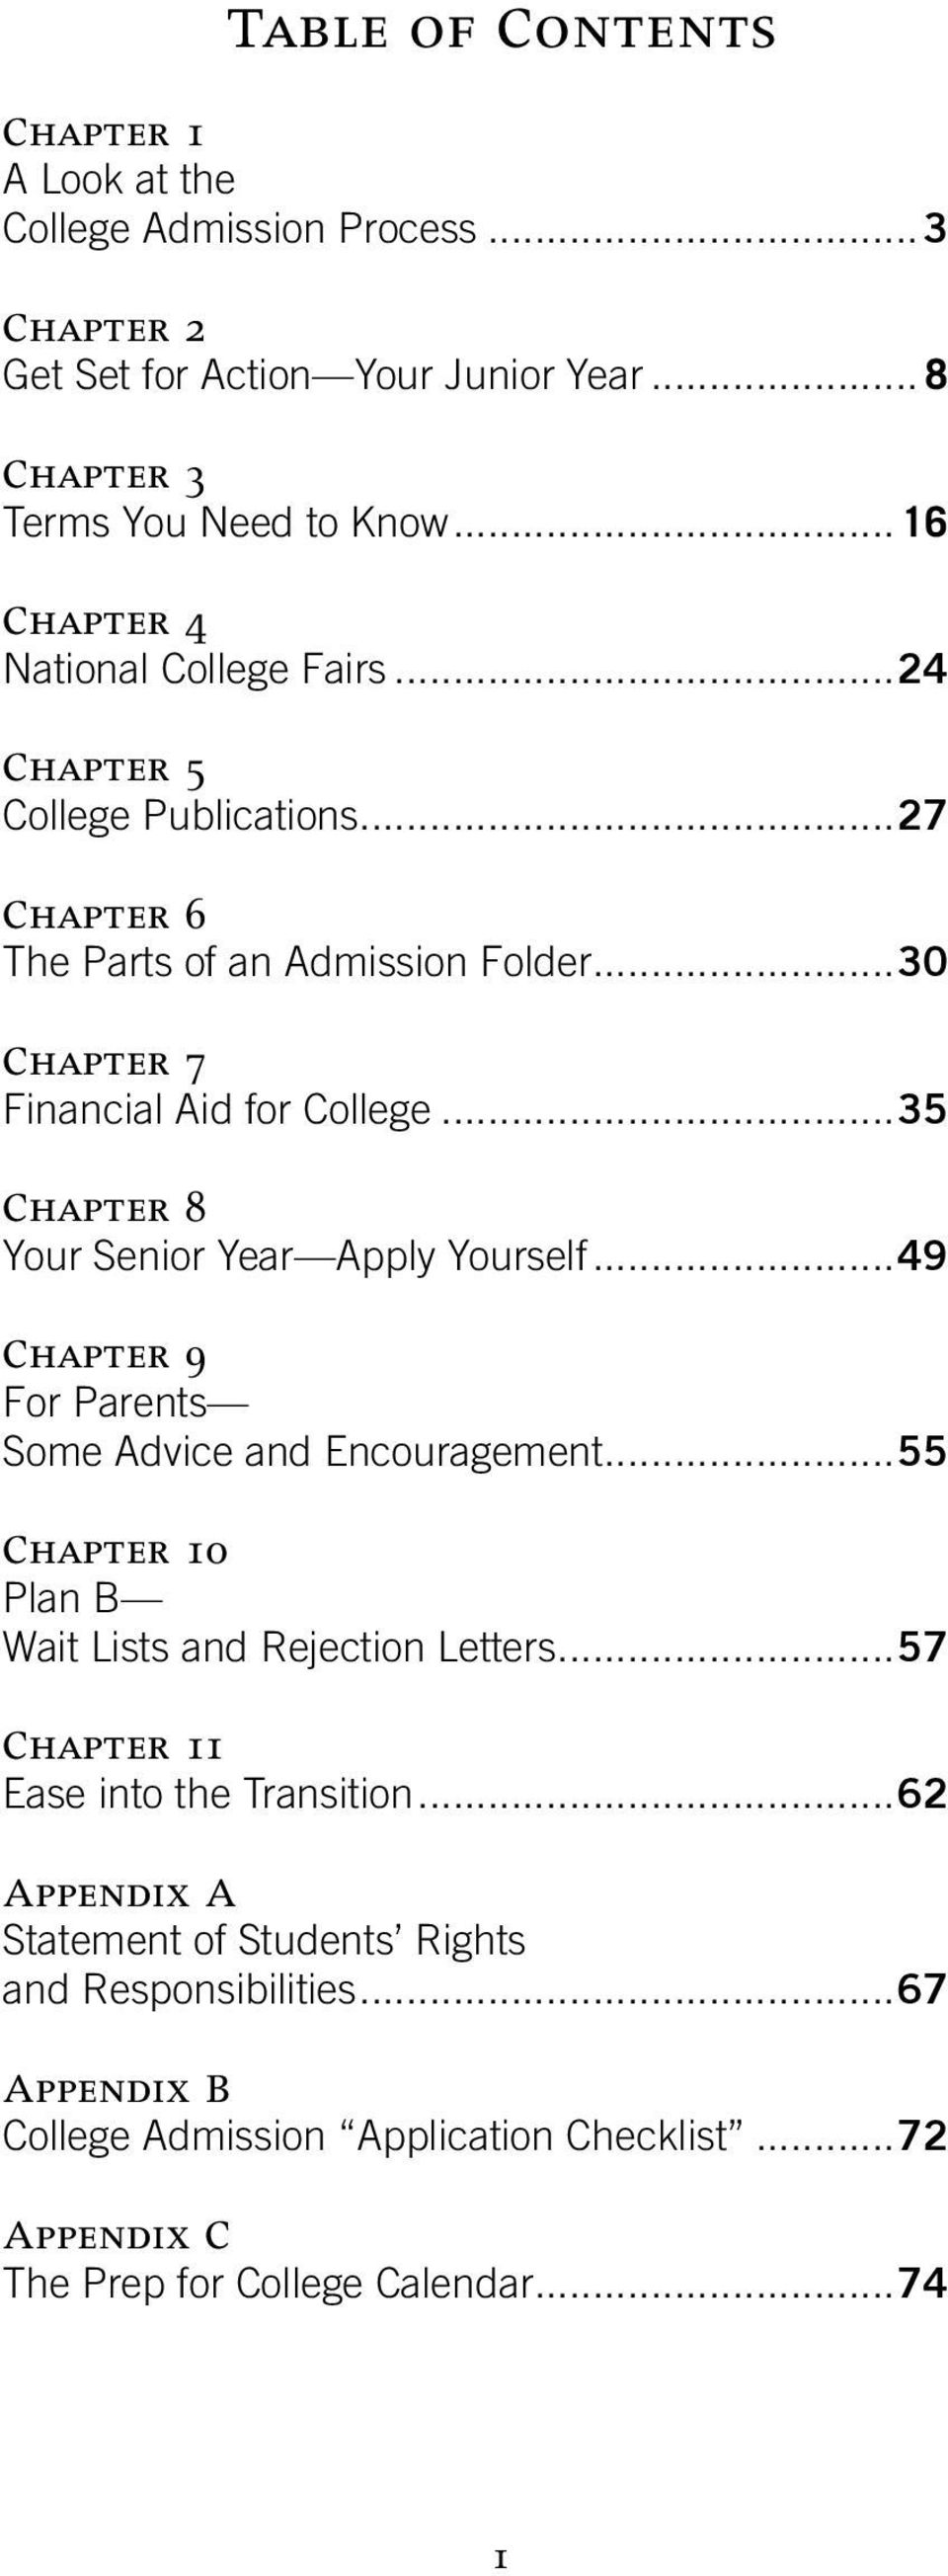 Year Apply Yourself 49 Chapter 9 For Parents Some Advice and Encouragement 55 Chapter 10 Plan B Wait Lists and Rejection Letters 57 Chapter 11 Ease into the